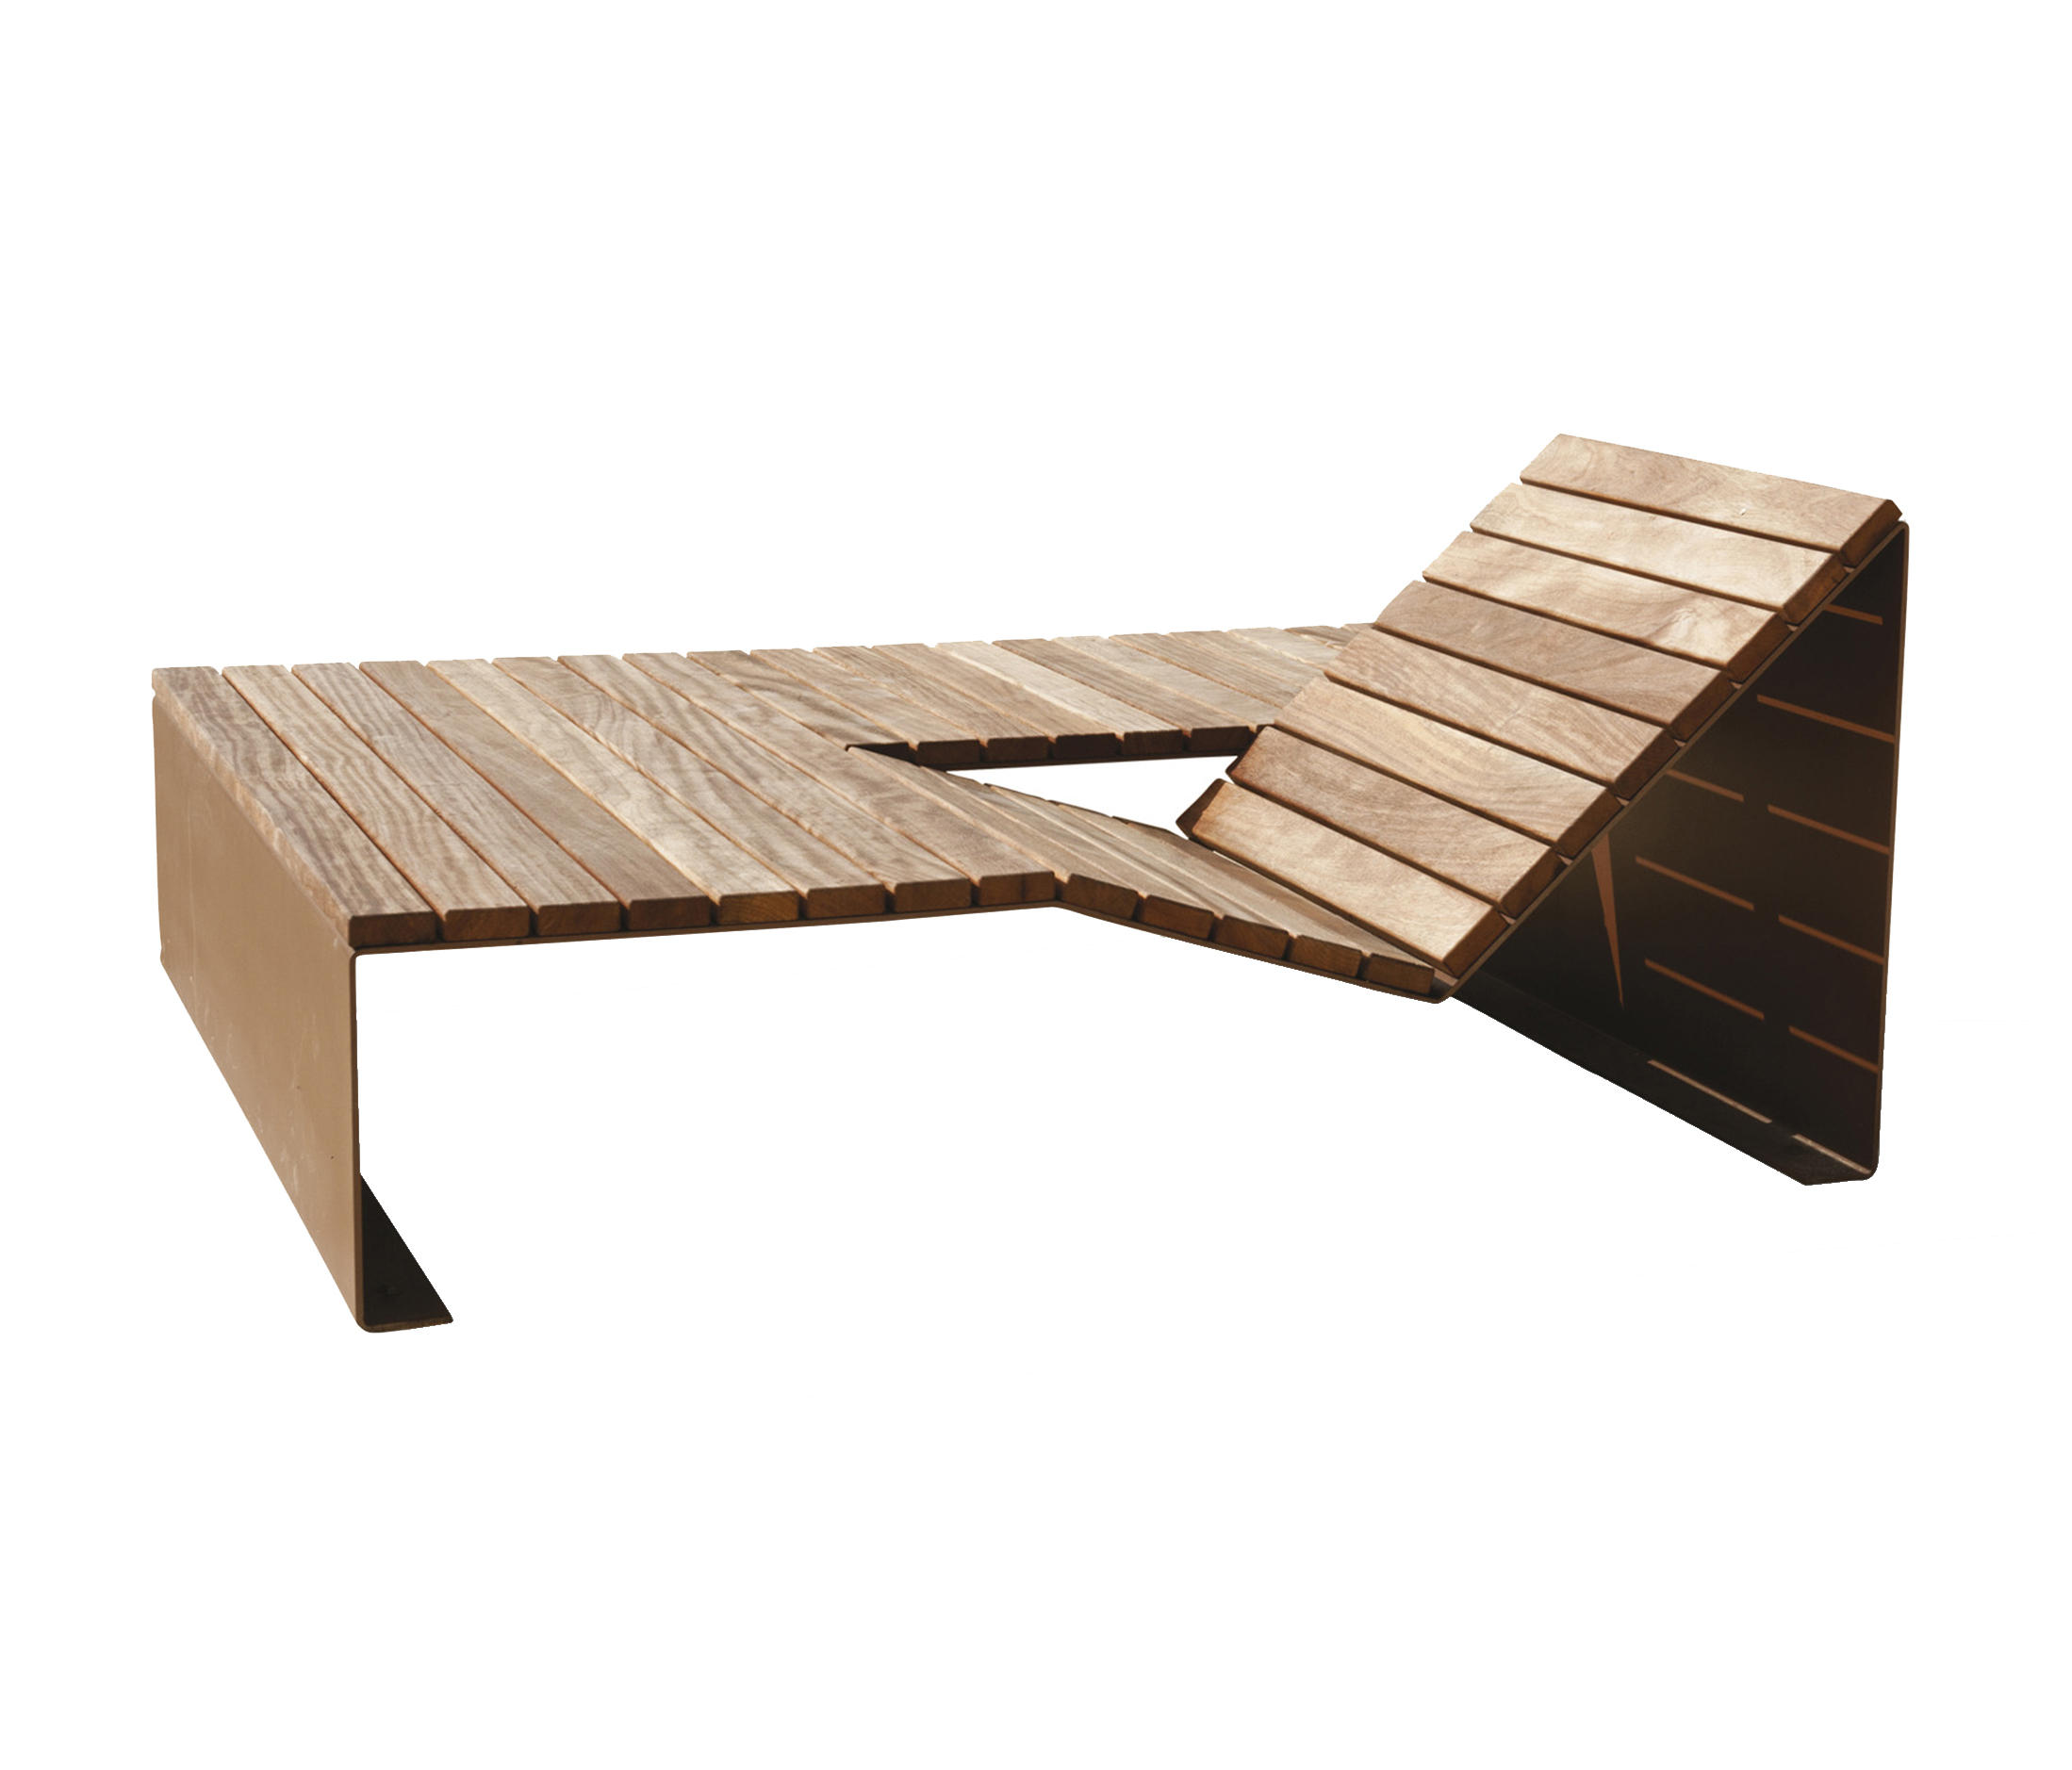 absolut bain de soleil duo exterior benches from cyria architonic. Black Bedroom Furniture Sets. Home Design Ideas